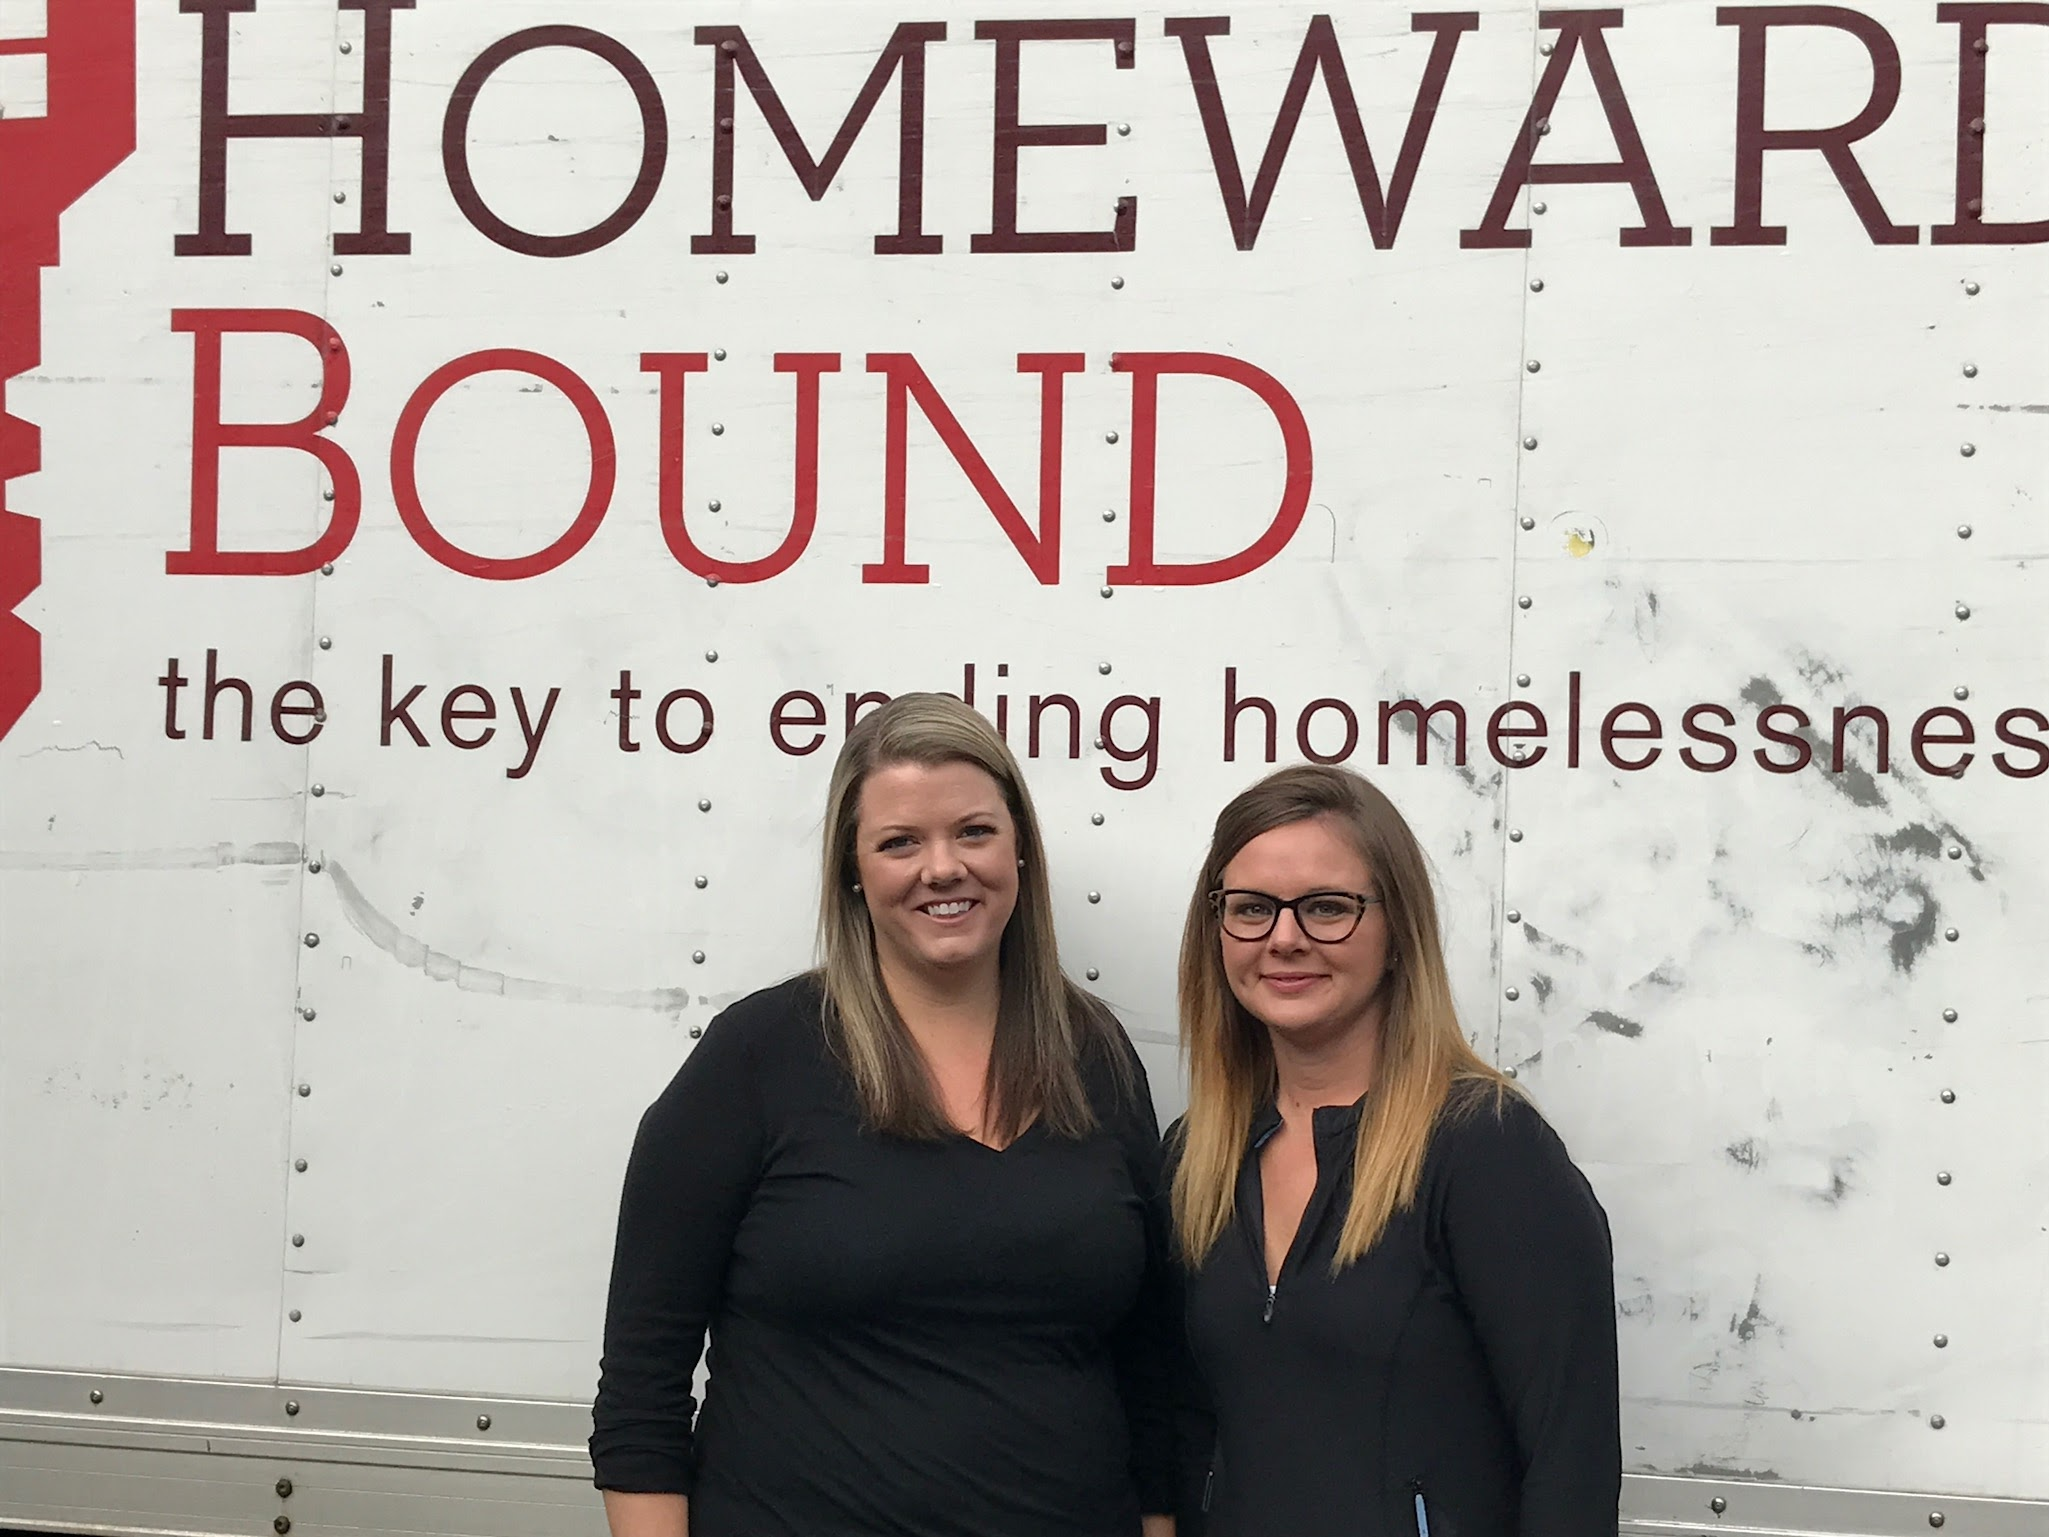 Employees from BB&T helped move a family into a permanent home through Homeward Bound